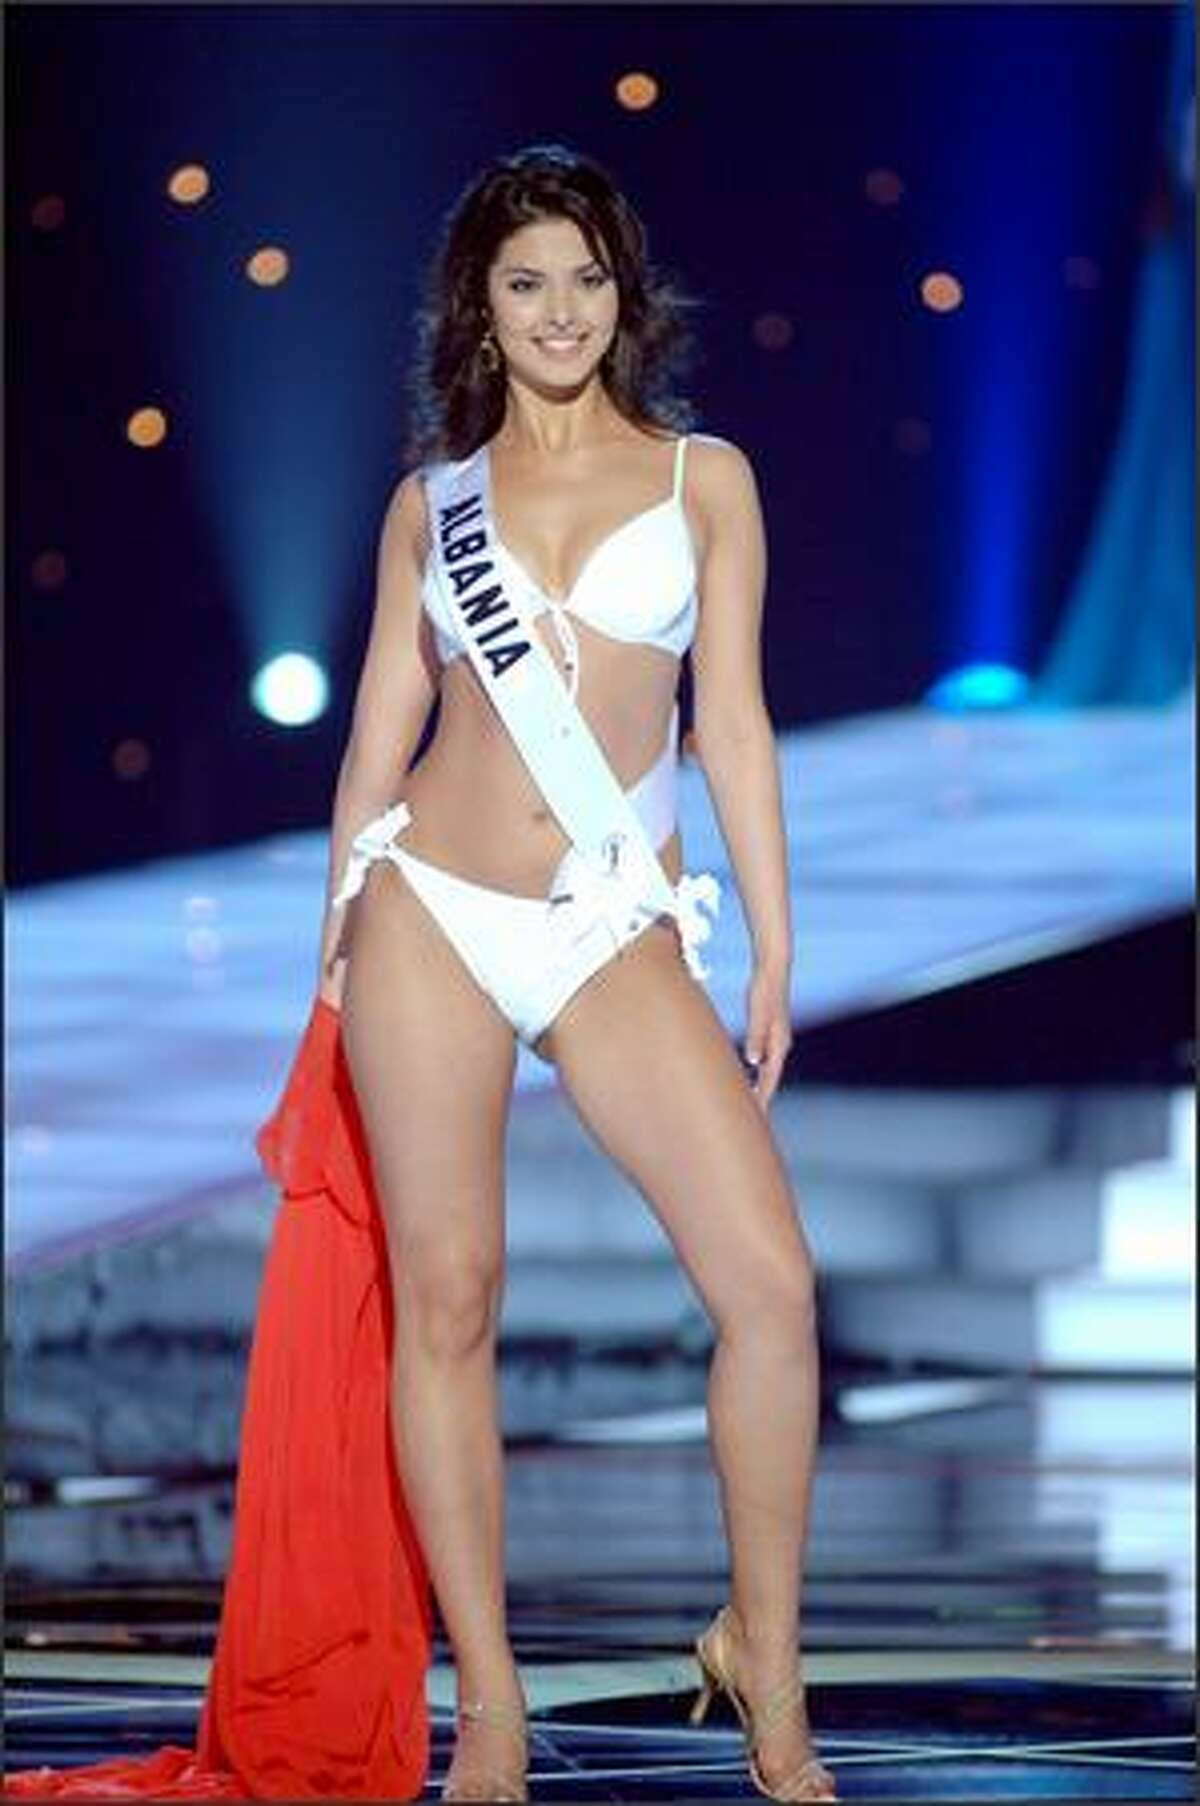 Agnesë Vuthaj, Miss Albania, competes in her BSC Swimsuit and Nina Shoes during the 2005 Miss Universe Presentation Show at Impact Arena, Exhibition and Convention Center in Bangkok, Thailand on May 26. During the presentation show, each contestant was judged by a preliminary panel of six judges in swimsuit and evening gown categories, after two days of one-on-one interviews. The scores will be tallied and the top 15 contestants will be announced during Monday's telecast (NBC, tape-delayed to 9 p.m. PDT), at the conclusion of which a winner will be crowned.